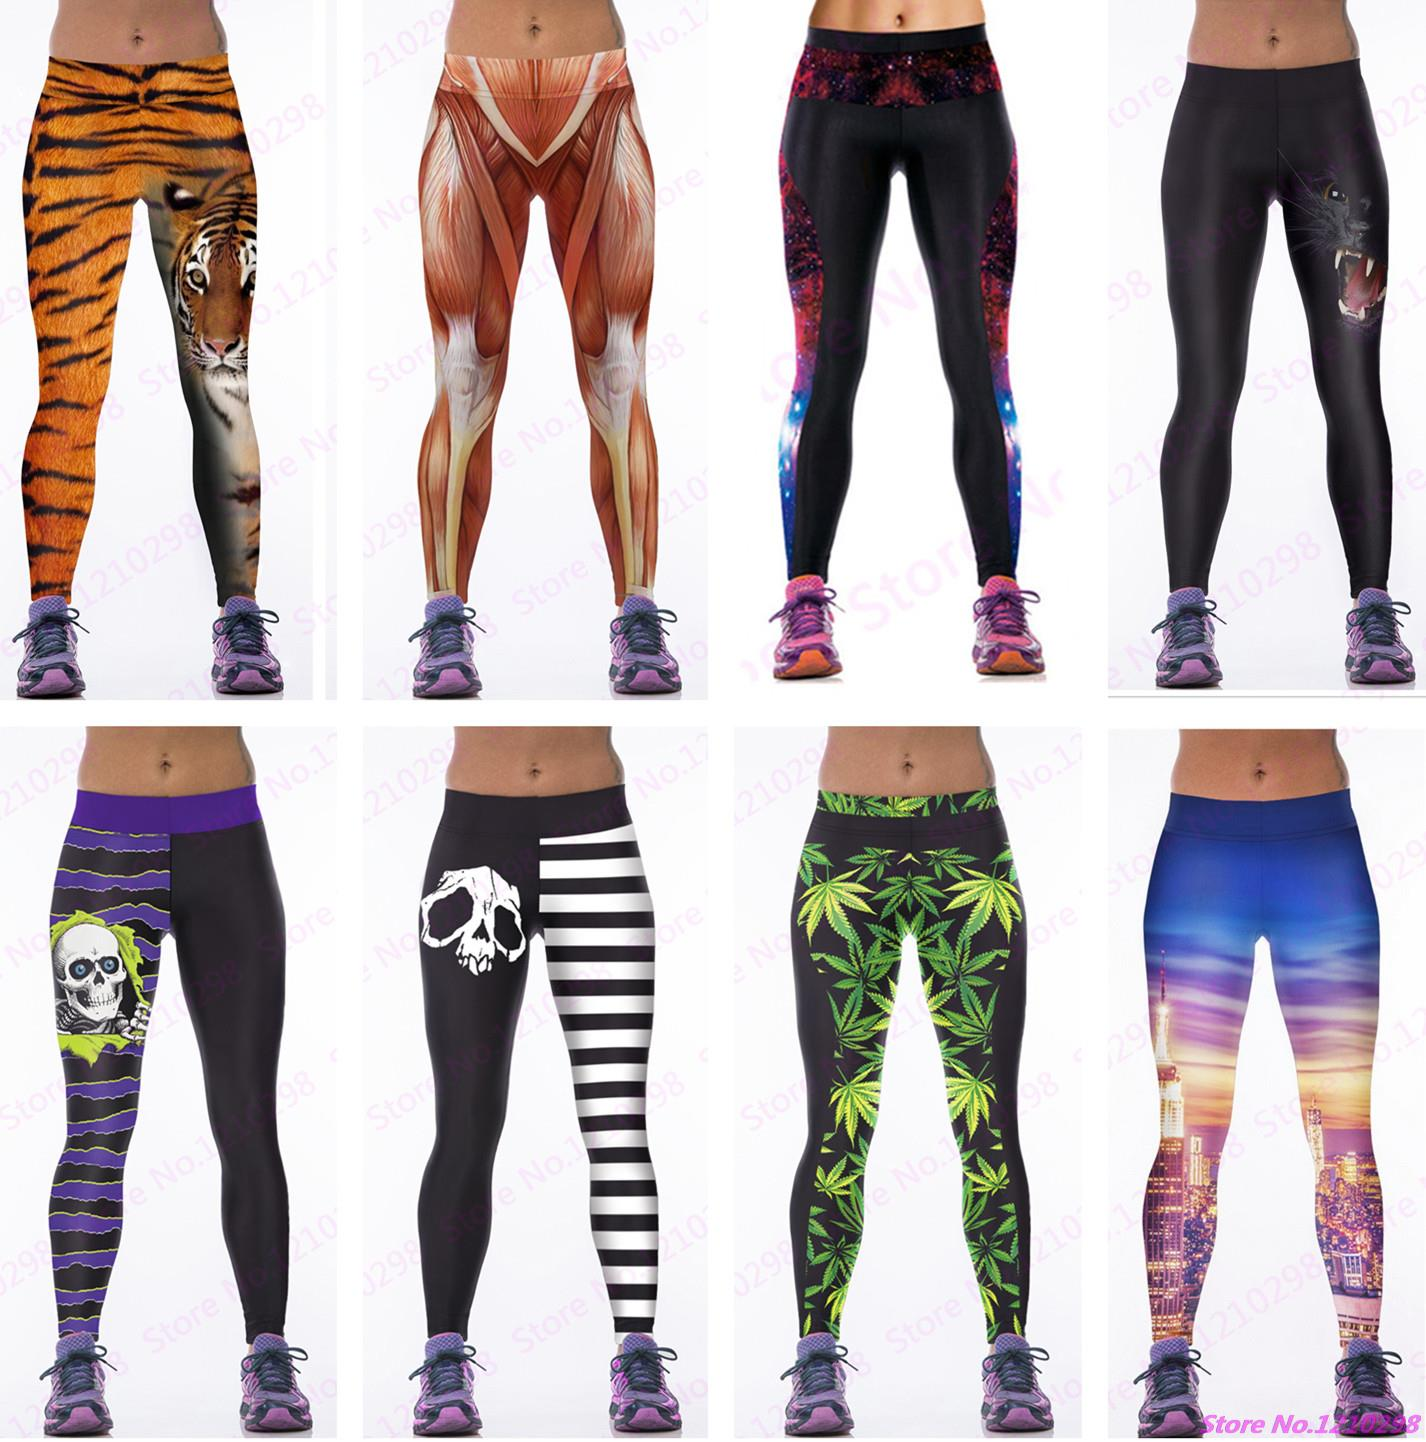 35f233cb9d Sexy Women Yoga Pants 3D Print Animal Tiger Muscle Skulls Leaves Printing  Running Pants High Waist Female Sports Skinny Leggings